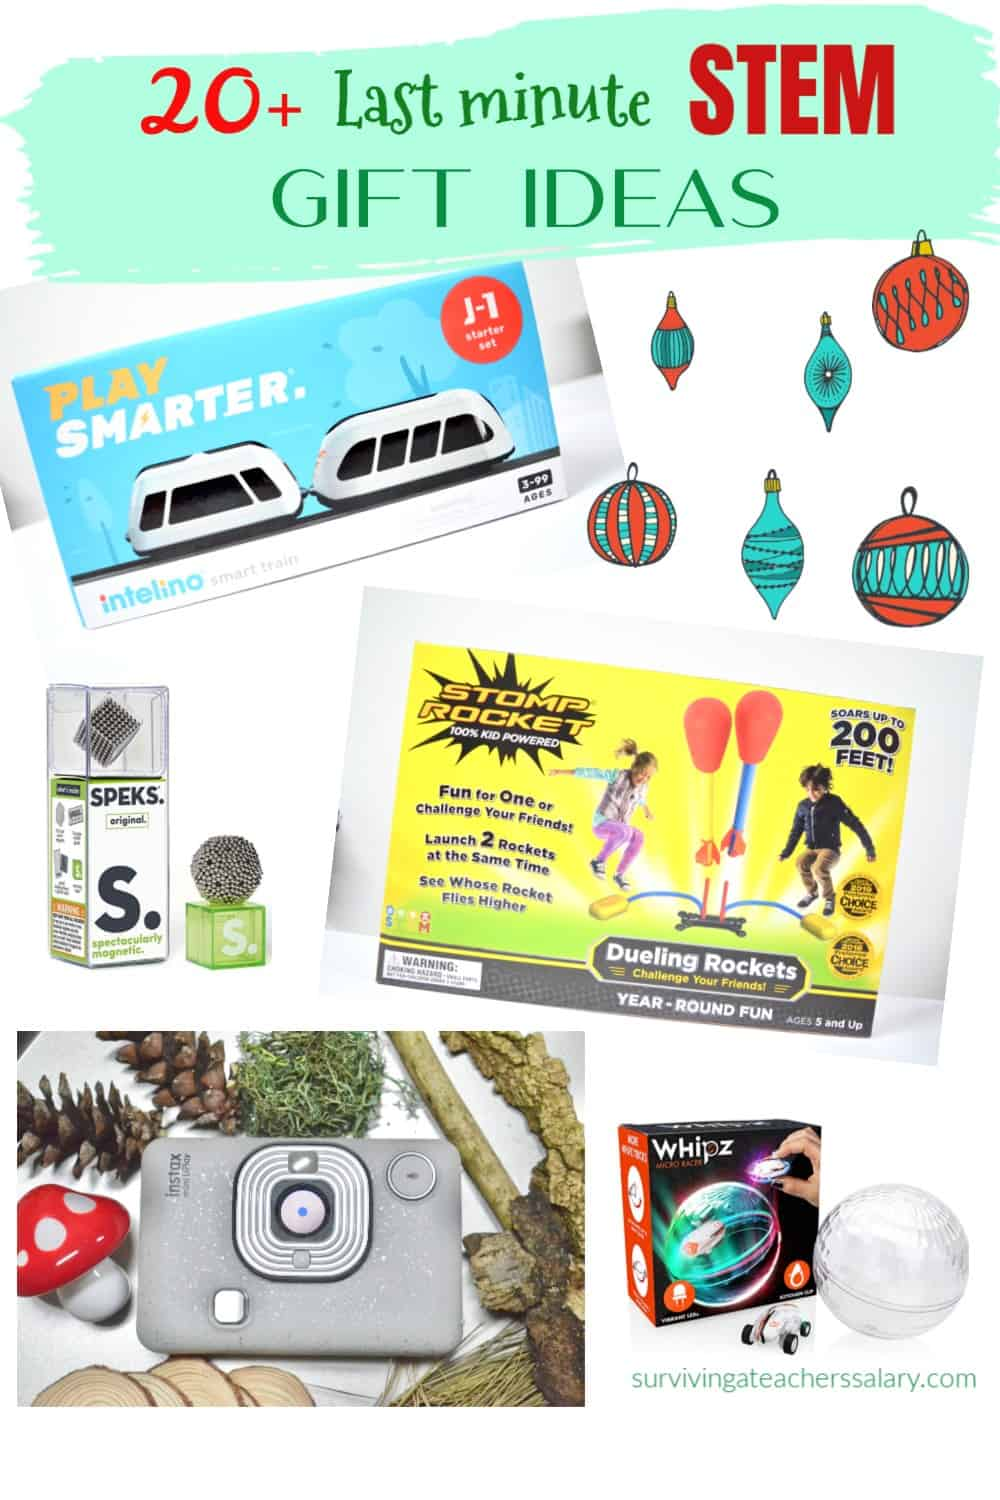 Last Minute STEM Gift Ideas for the Holidays!